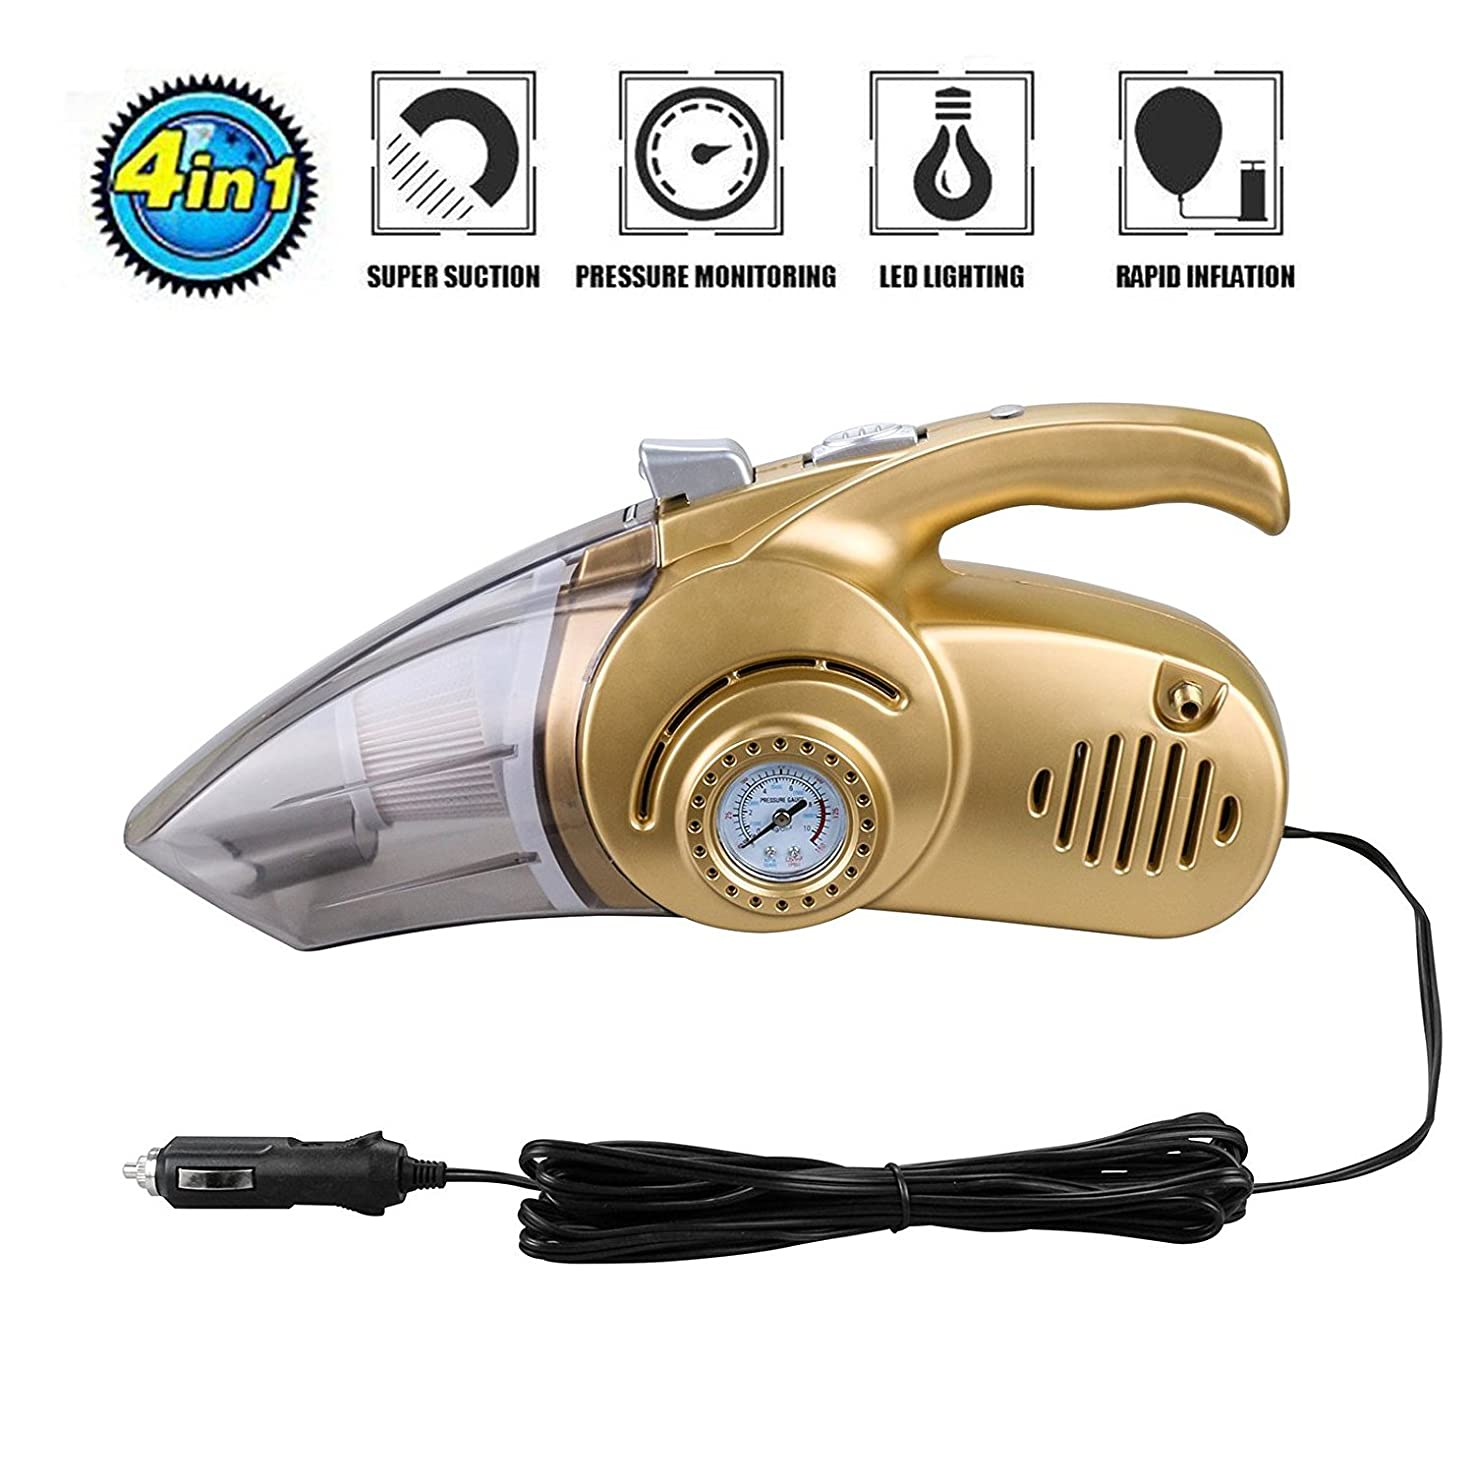 MUEQU 4 in 1 Car Vacuum Cleaner With Tire Inflator,Tire Pressure Gauge,Floodlight,12V 120W Handheld Wet/Dry vacuum Cleaner,Strong Suction,Filter, 4.5M Power Cord (Gold)